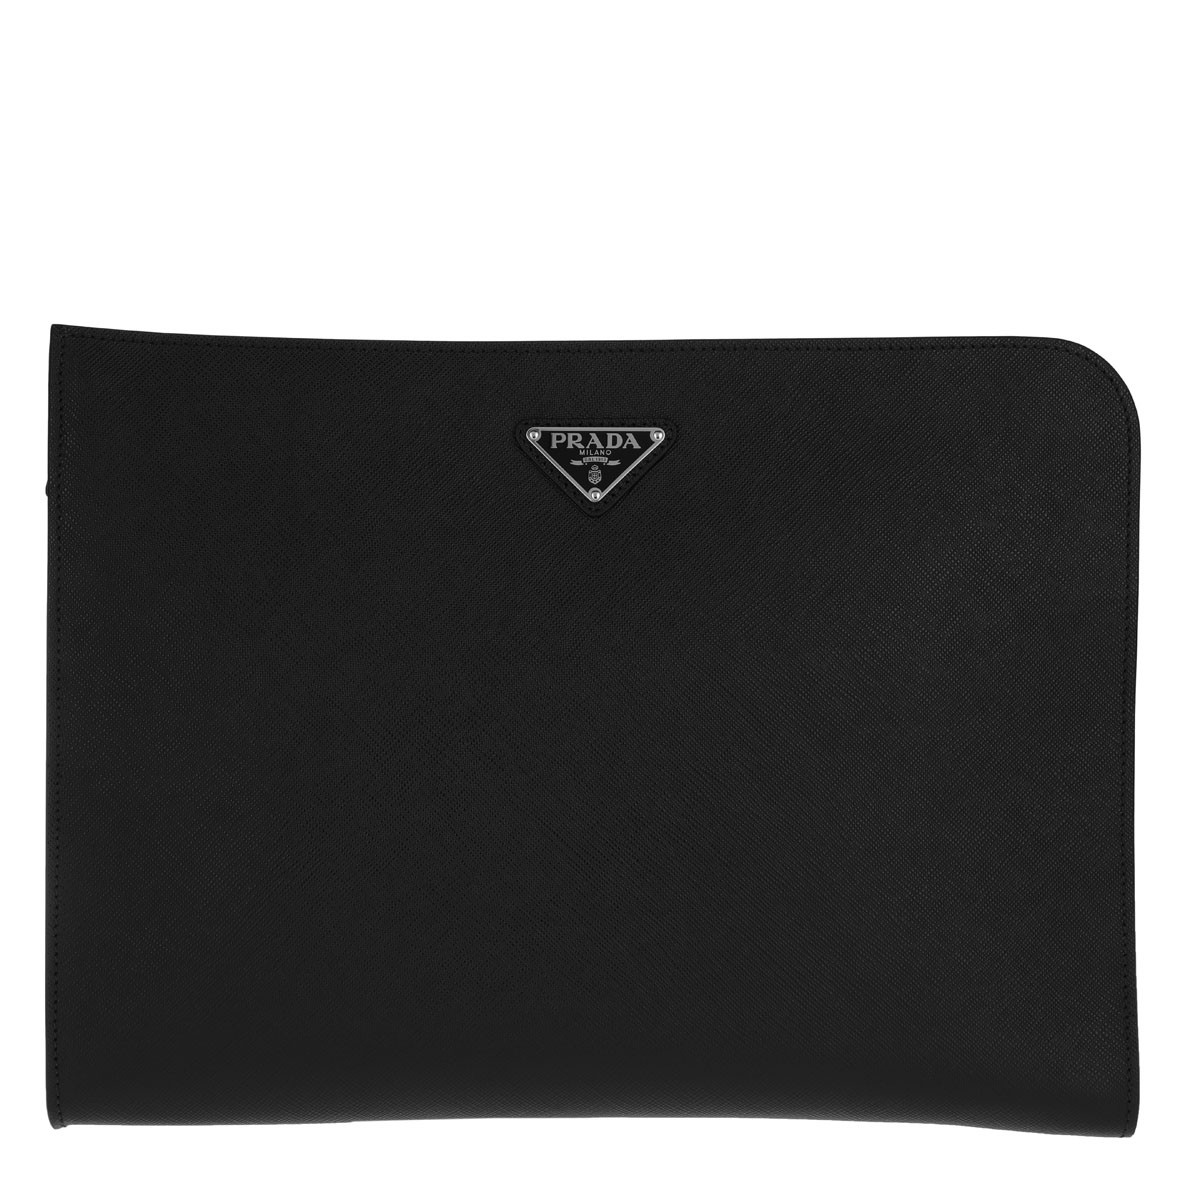 Prada Herrentasche - Business Clutch Triangle Logo Leather Black - in schwarz - für Damen